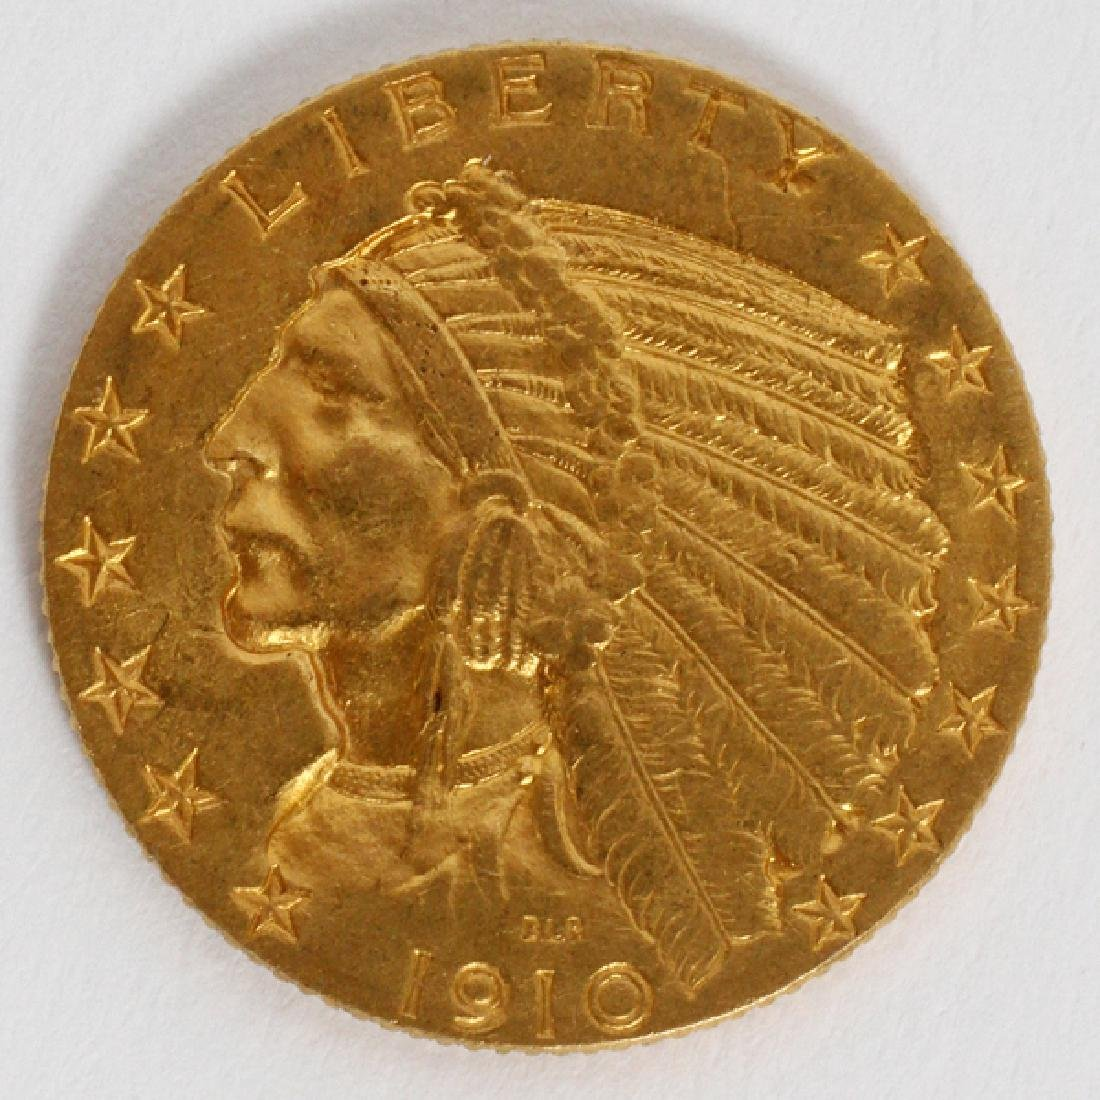 U.S. $5 INDIAN CHIEF 'WALKING-EAGLE' GOLD COIN 1910